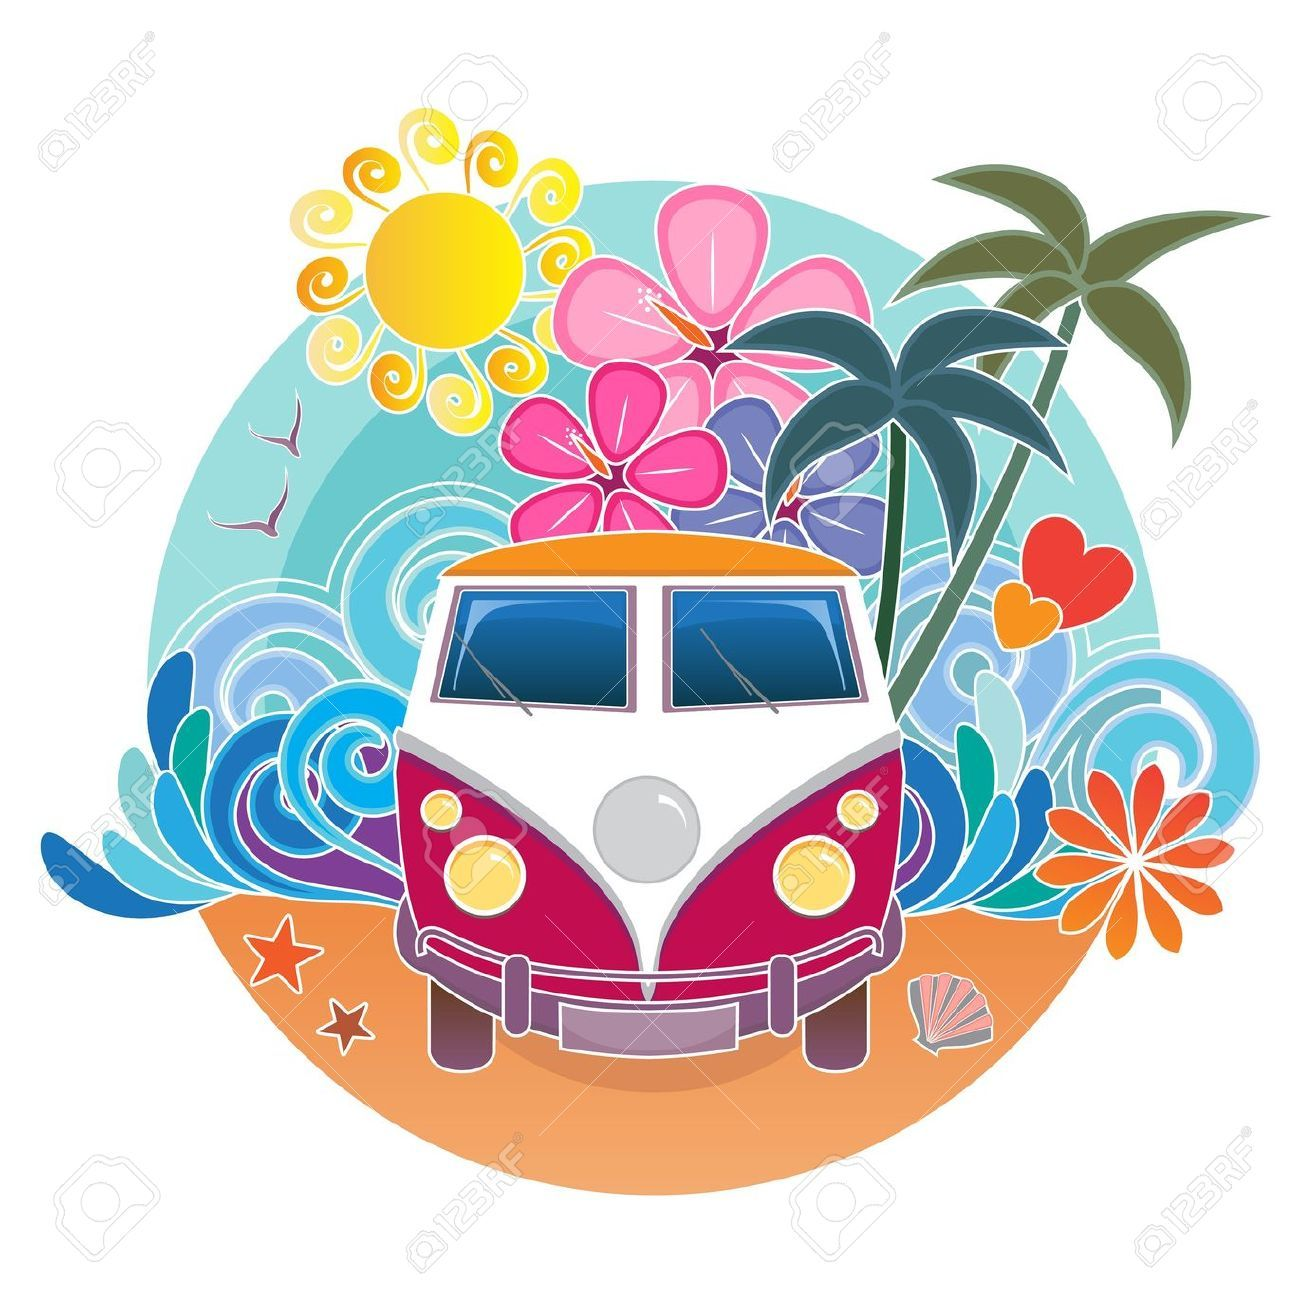 Retro Van Stock Vector Illustration And Royalty Free Retro.